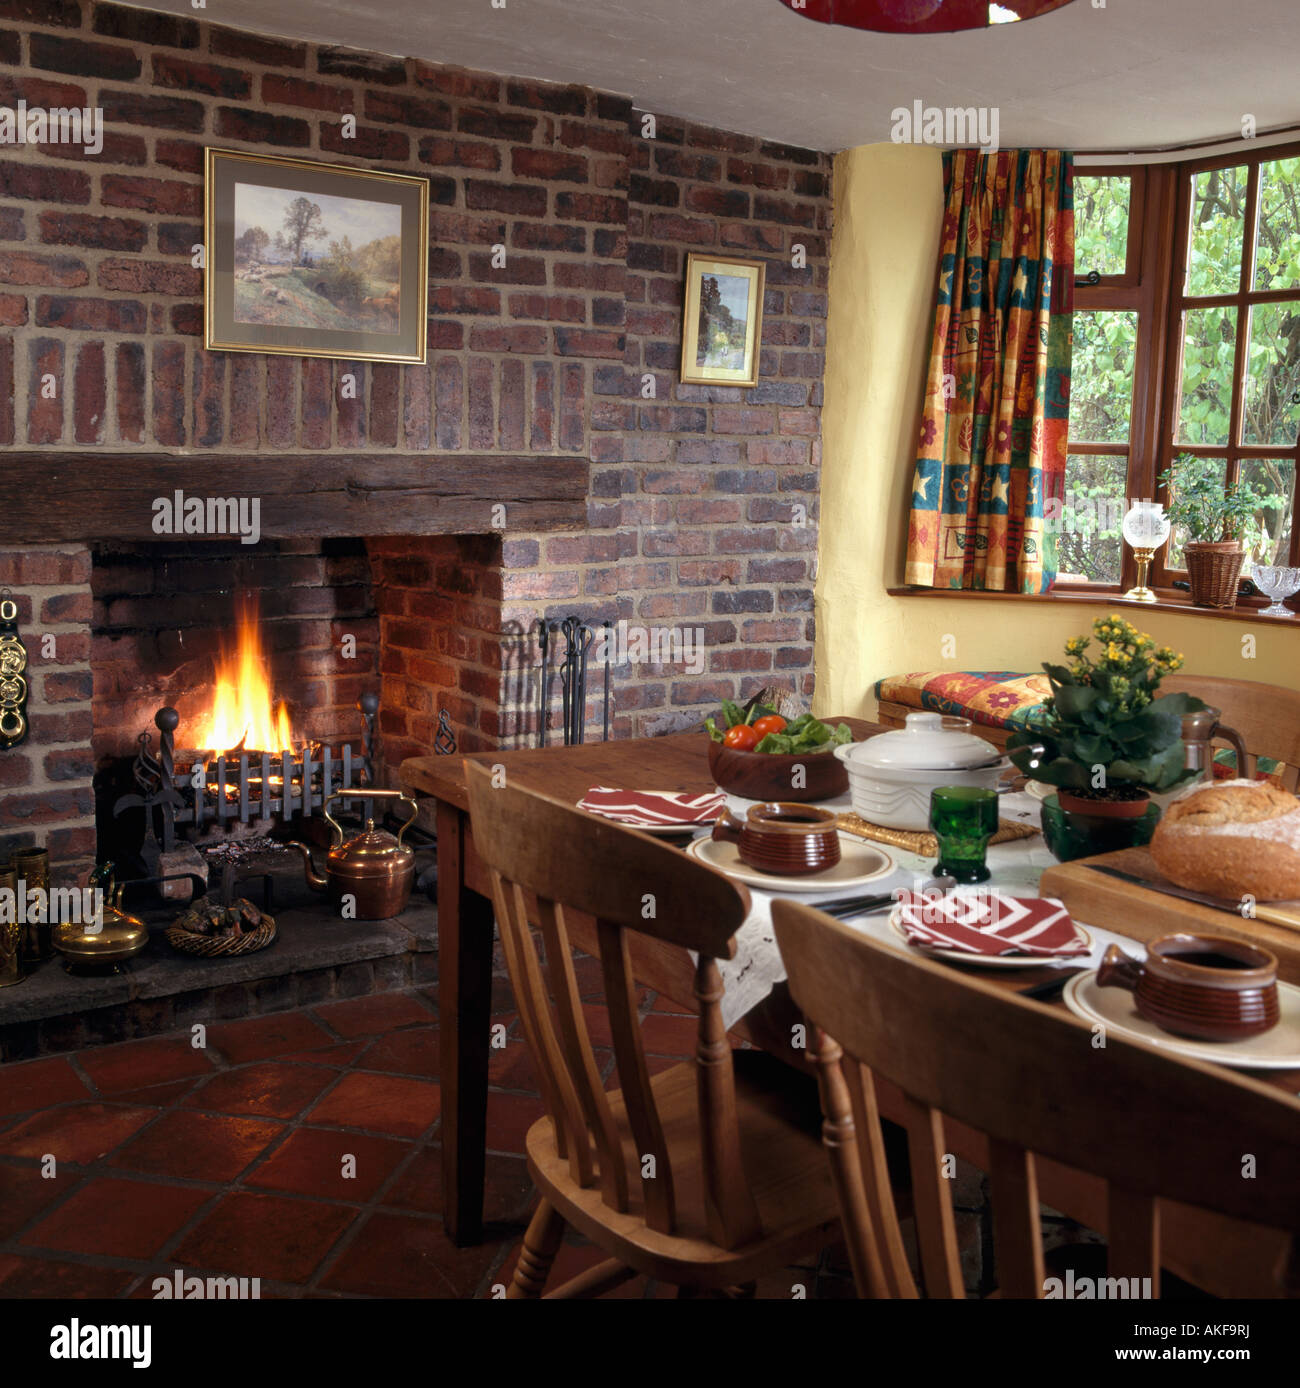 lighted fire in fireplace in exposed brick wall in cottage dining